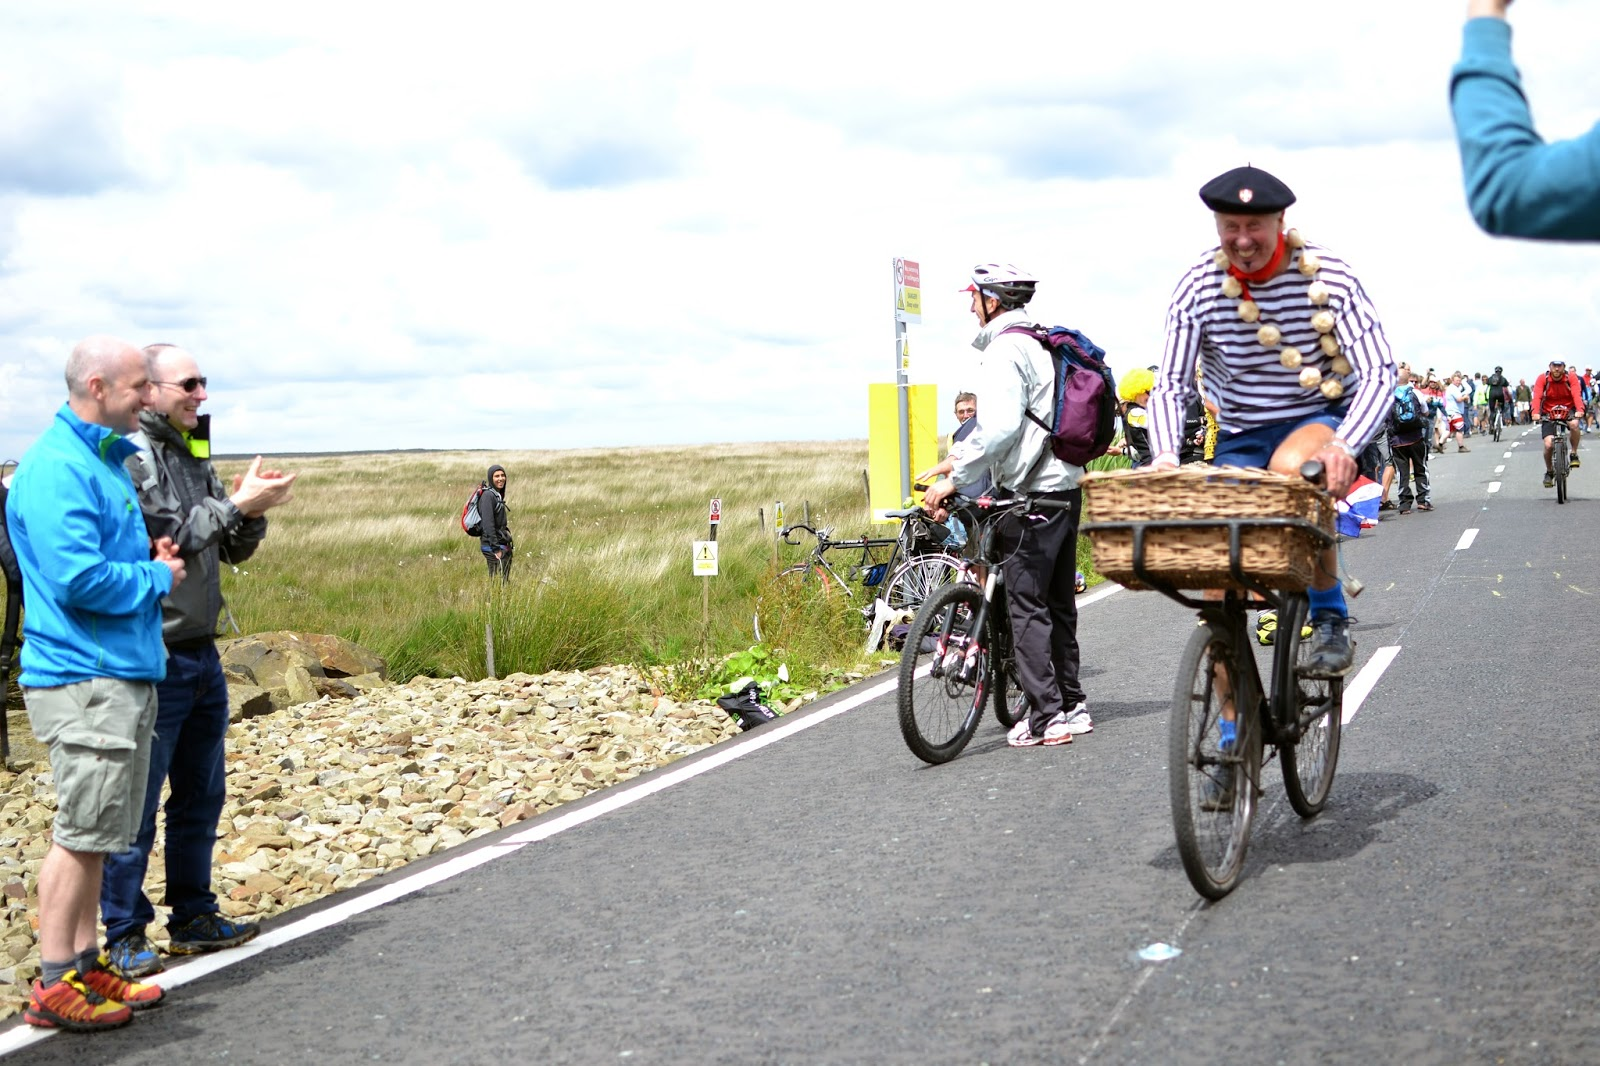 garlic, stripy top t-shirt, caravan, le tour de france, le tour, the tour de france, team sky, peloton, yorkshire, lancashire, tour de yorkshire, blackstone edge, cycling, velo, littleborough, greater manchester, rochdale, cragg vale, north west, TDF, 2014, bikes, photography, sport, athletes, cyclists, uk, great Britain, united kingdom, france, french,